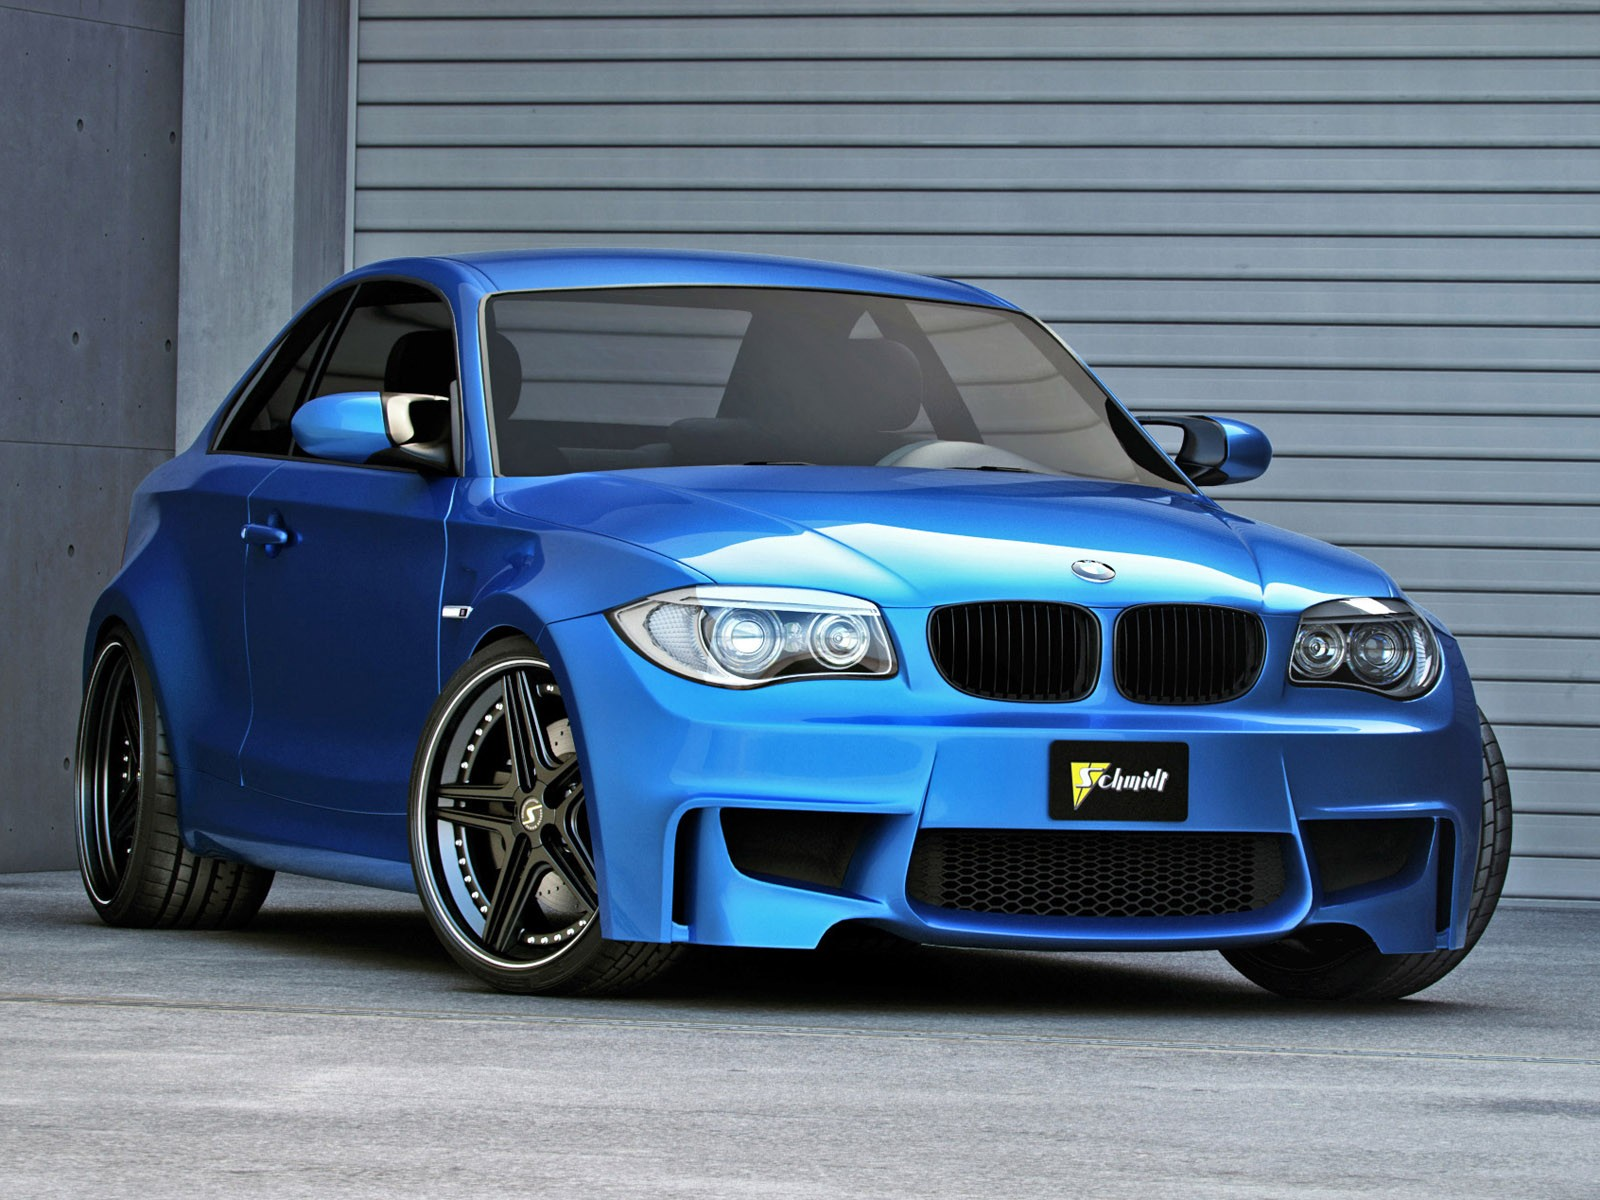 Bmw 1M Coupe (2012) - Schmidt Revolution